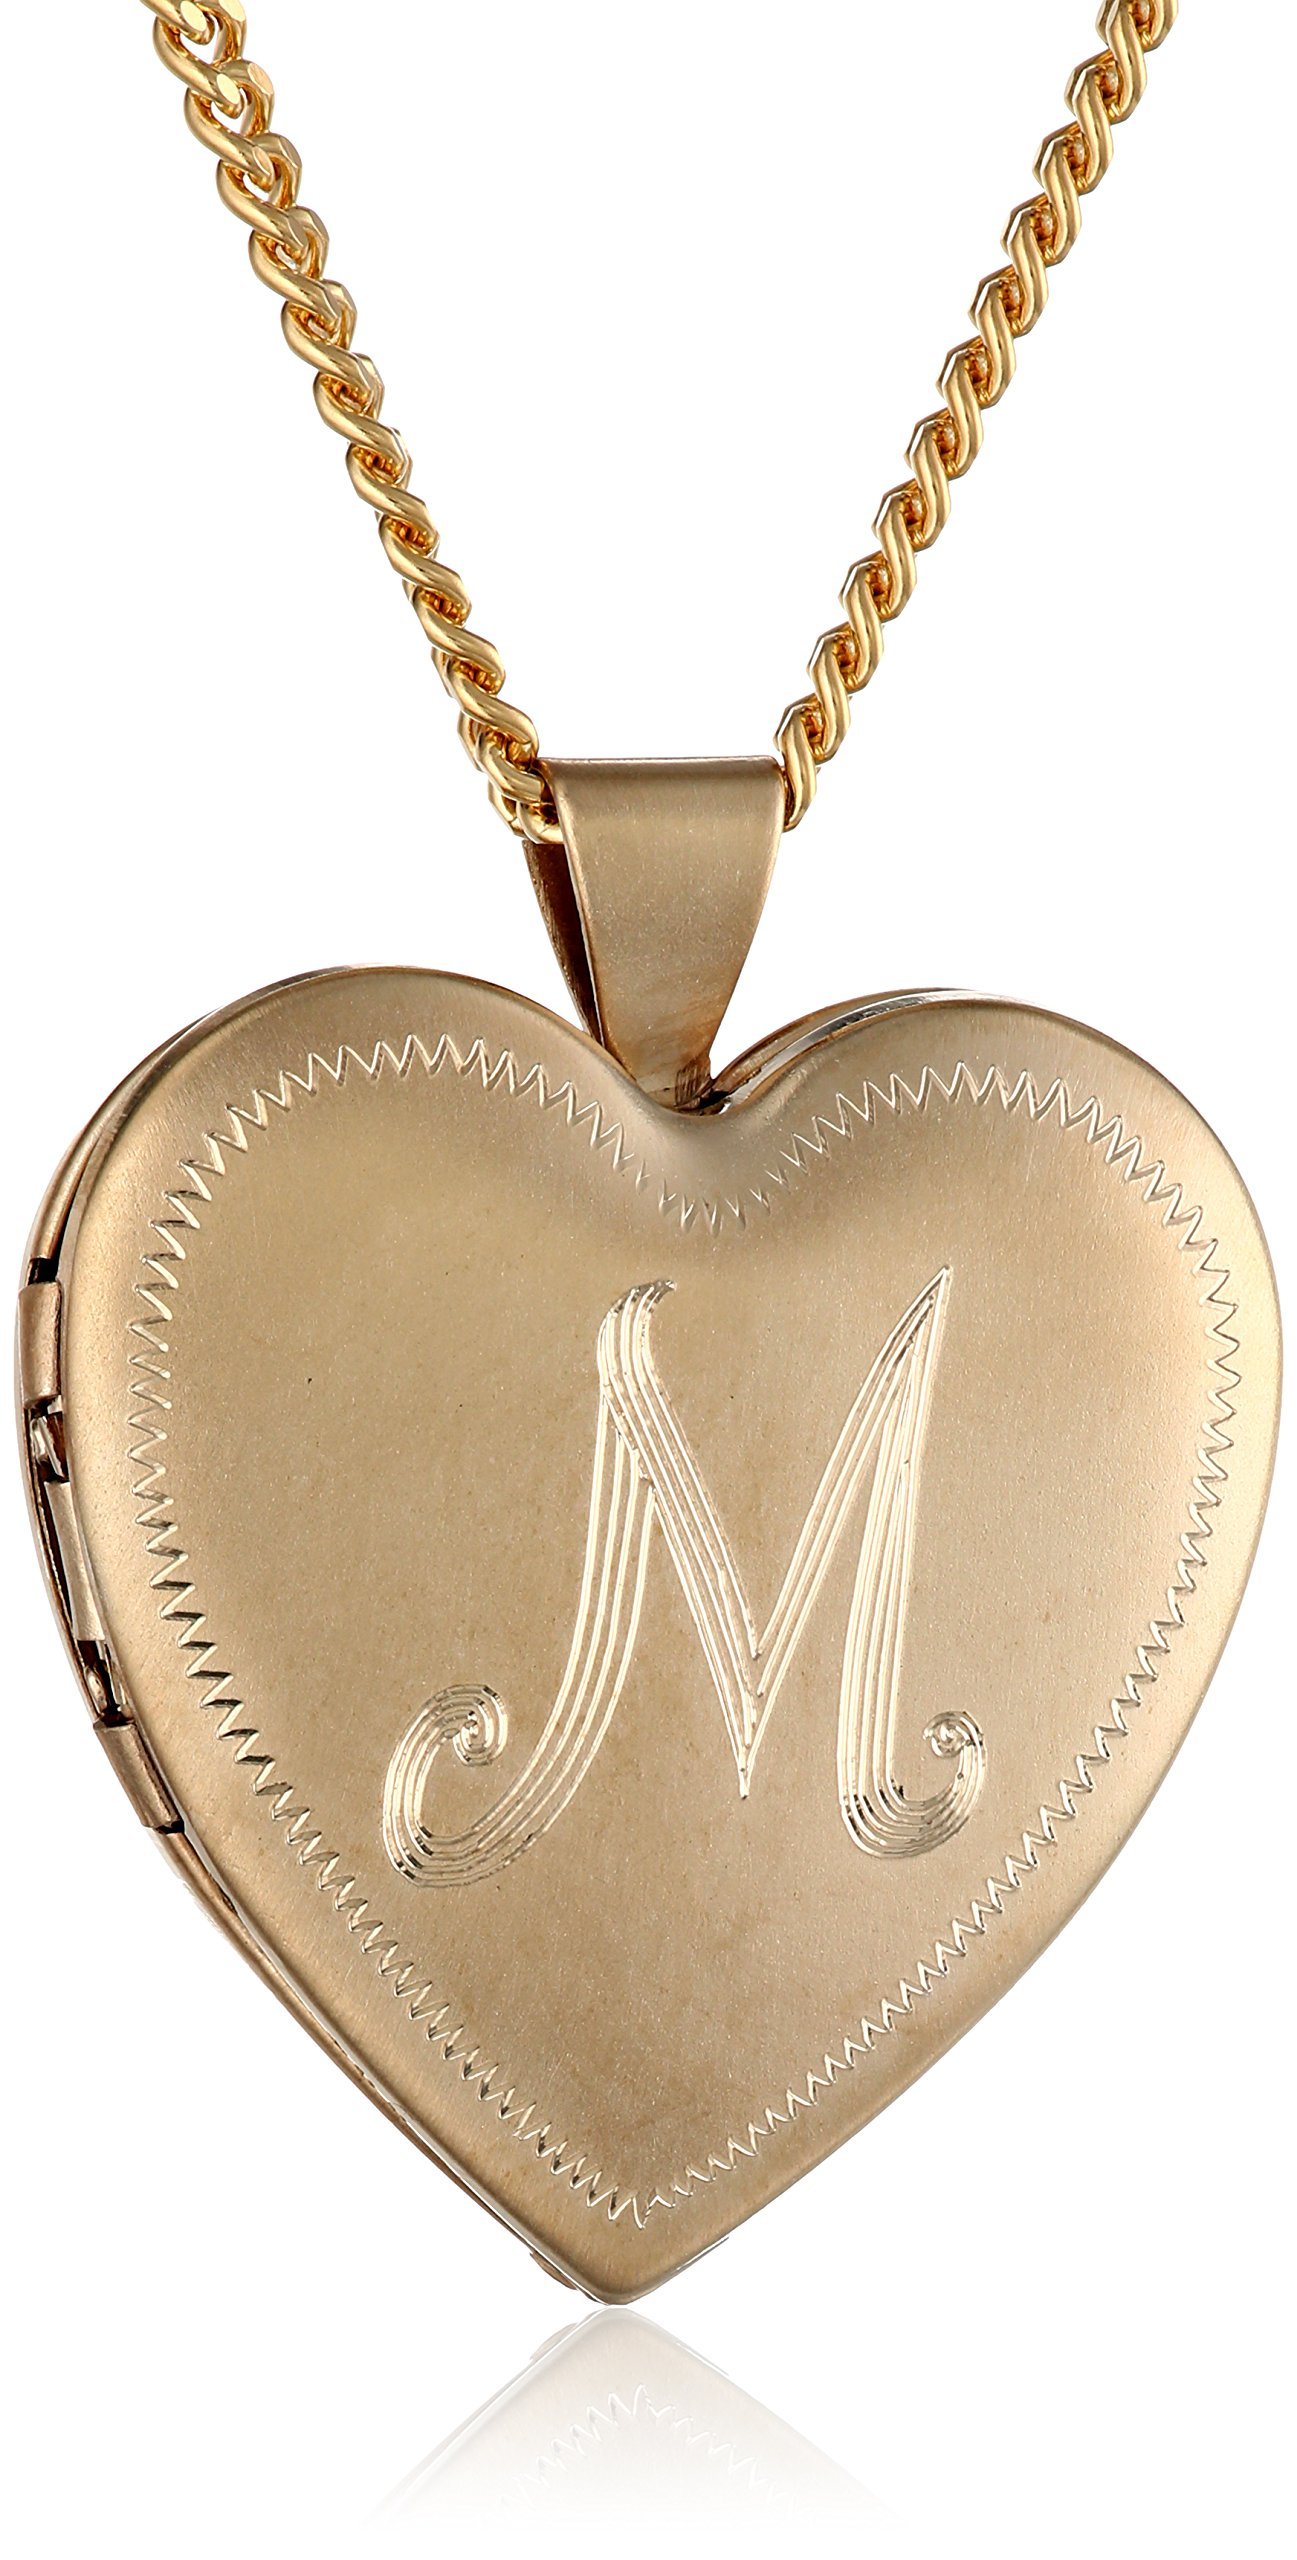 18k Gold-Plated Initial''M'' Heart 26mm (1'') Locket Necklace, 24''